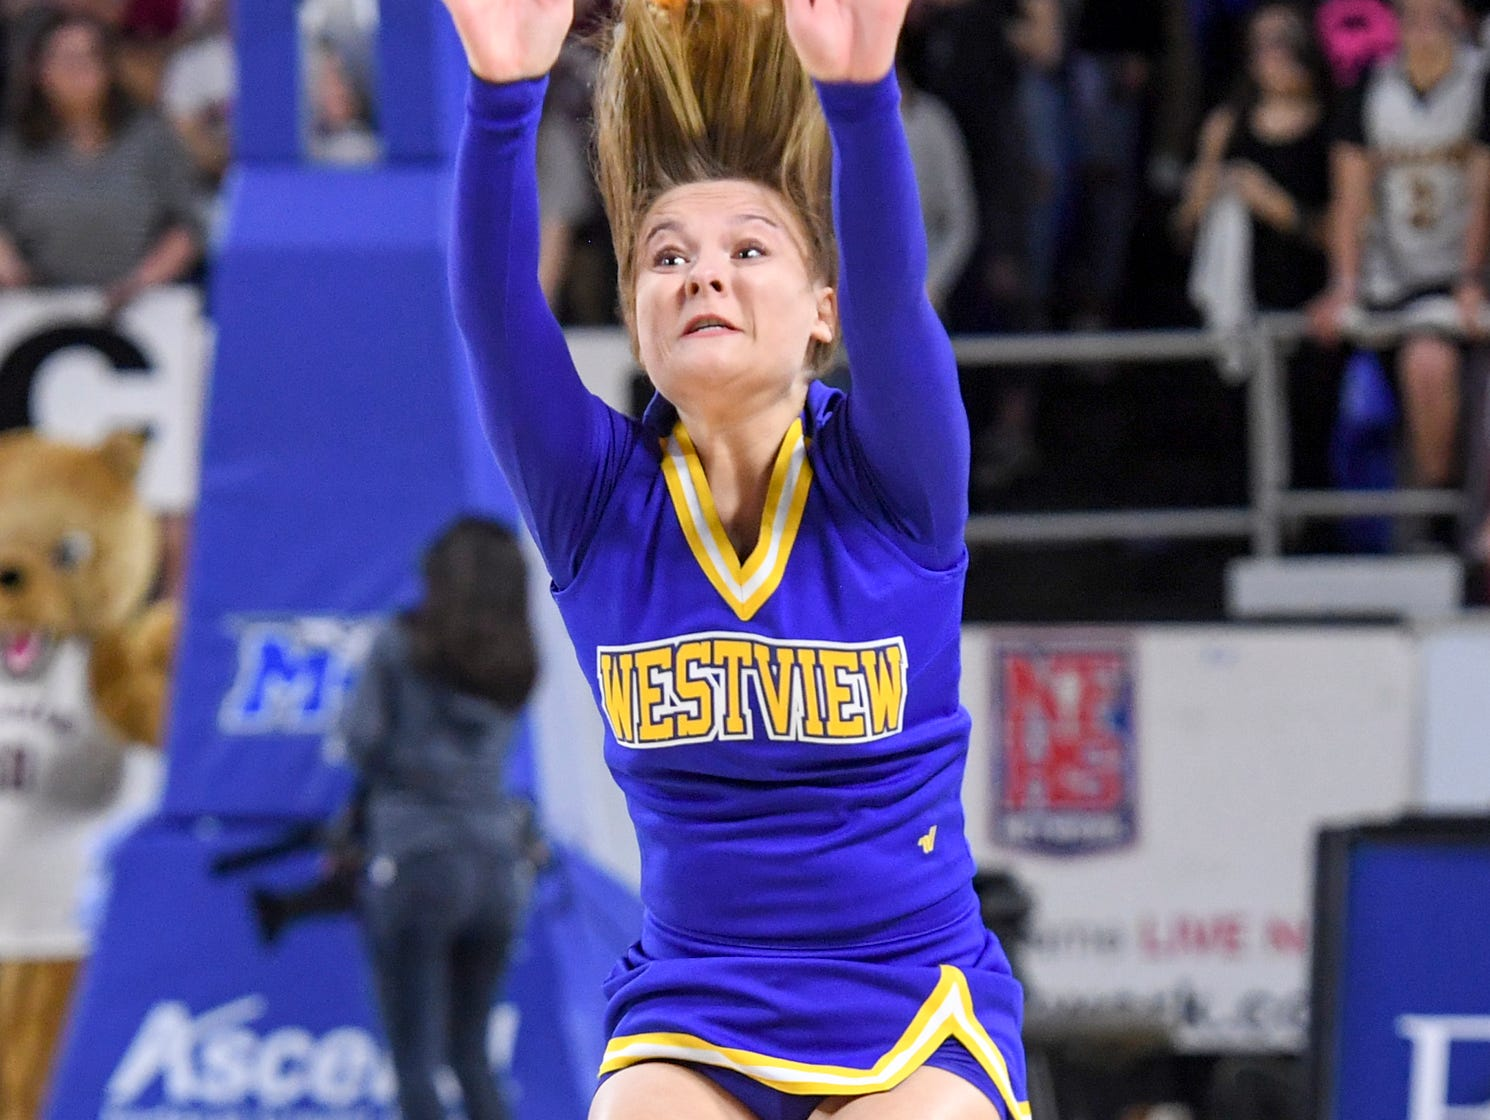 Westview High School cheerleader Kaylee Tims does back flips during a timeout during their Class AA championship game, Saturday, March 9, 2019, in Murfreesboro. Westview fell to Cheatham County, 43-40.